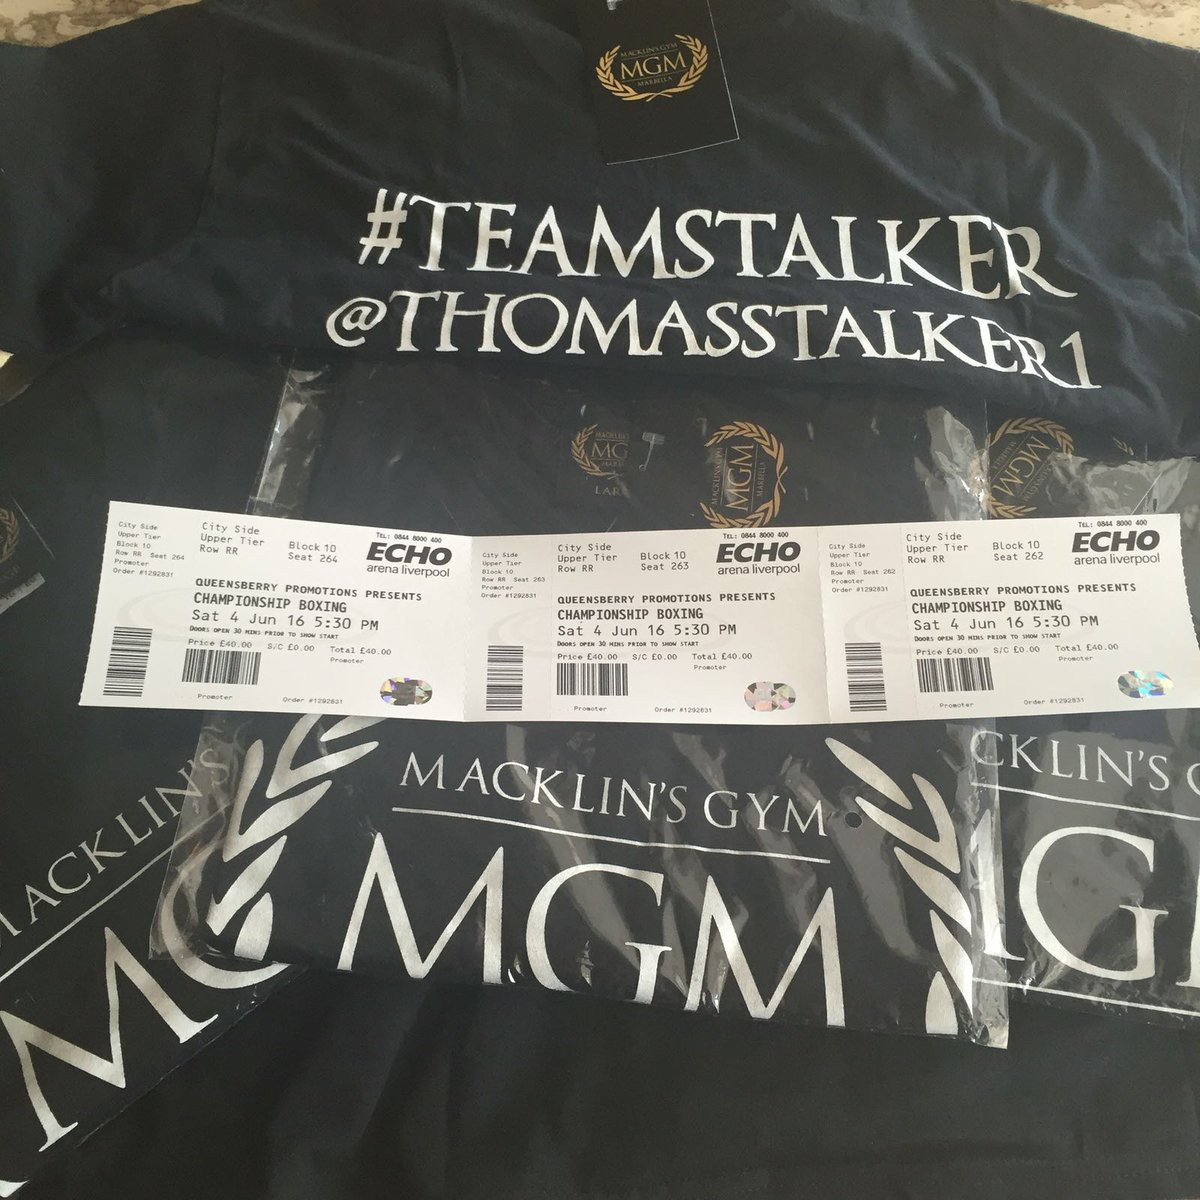 To win 3 @MGM_Marbella tops and 3 tickets for the boxing on sat follow @Mabel_Doll #WomensDesignerBoutigue #RT https://t.co/T6pJHRnyi7